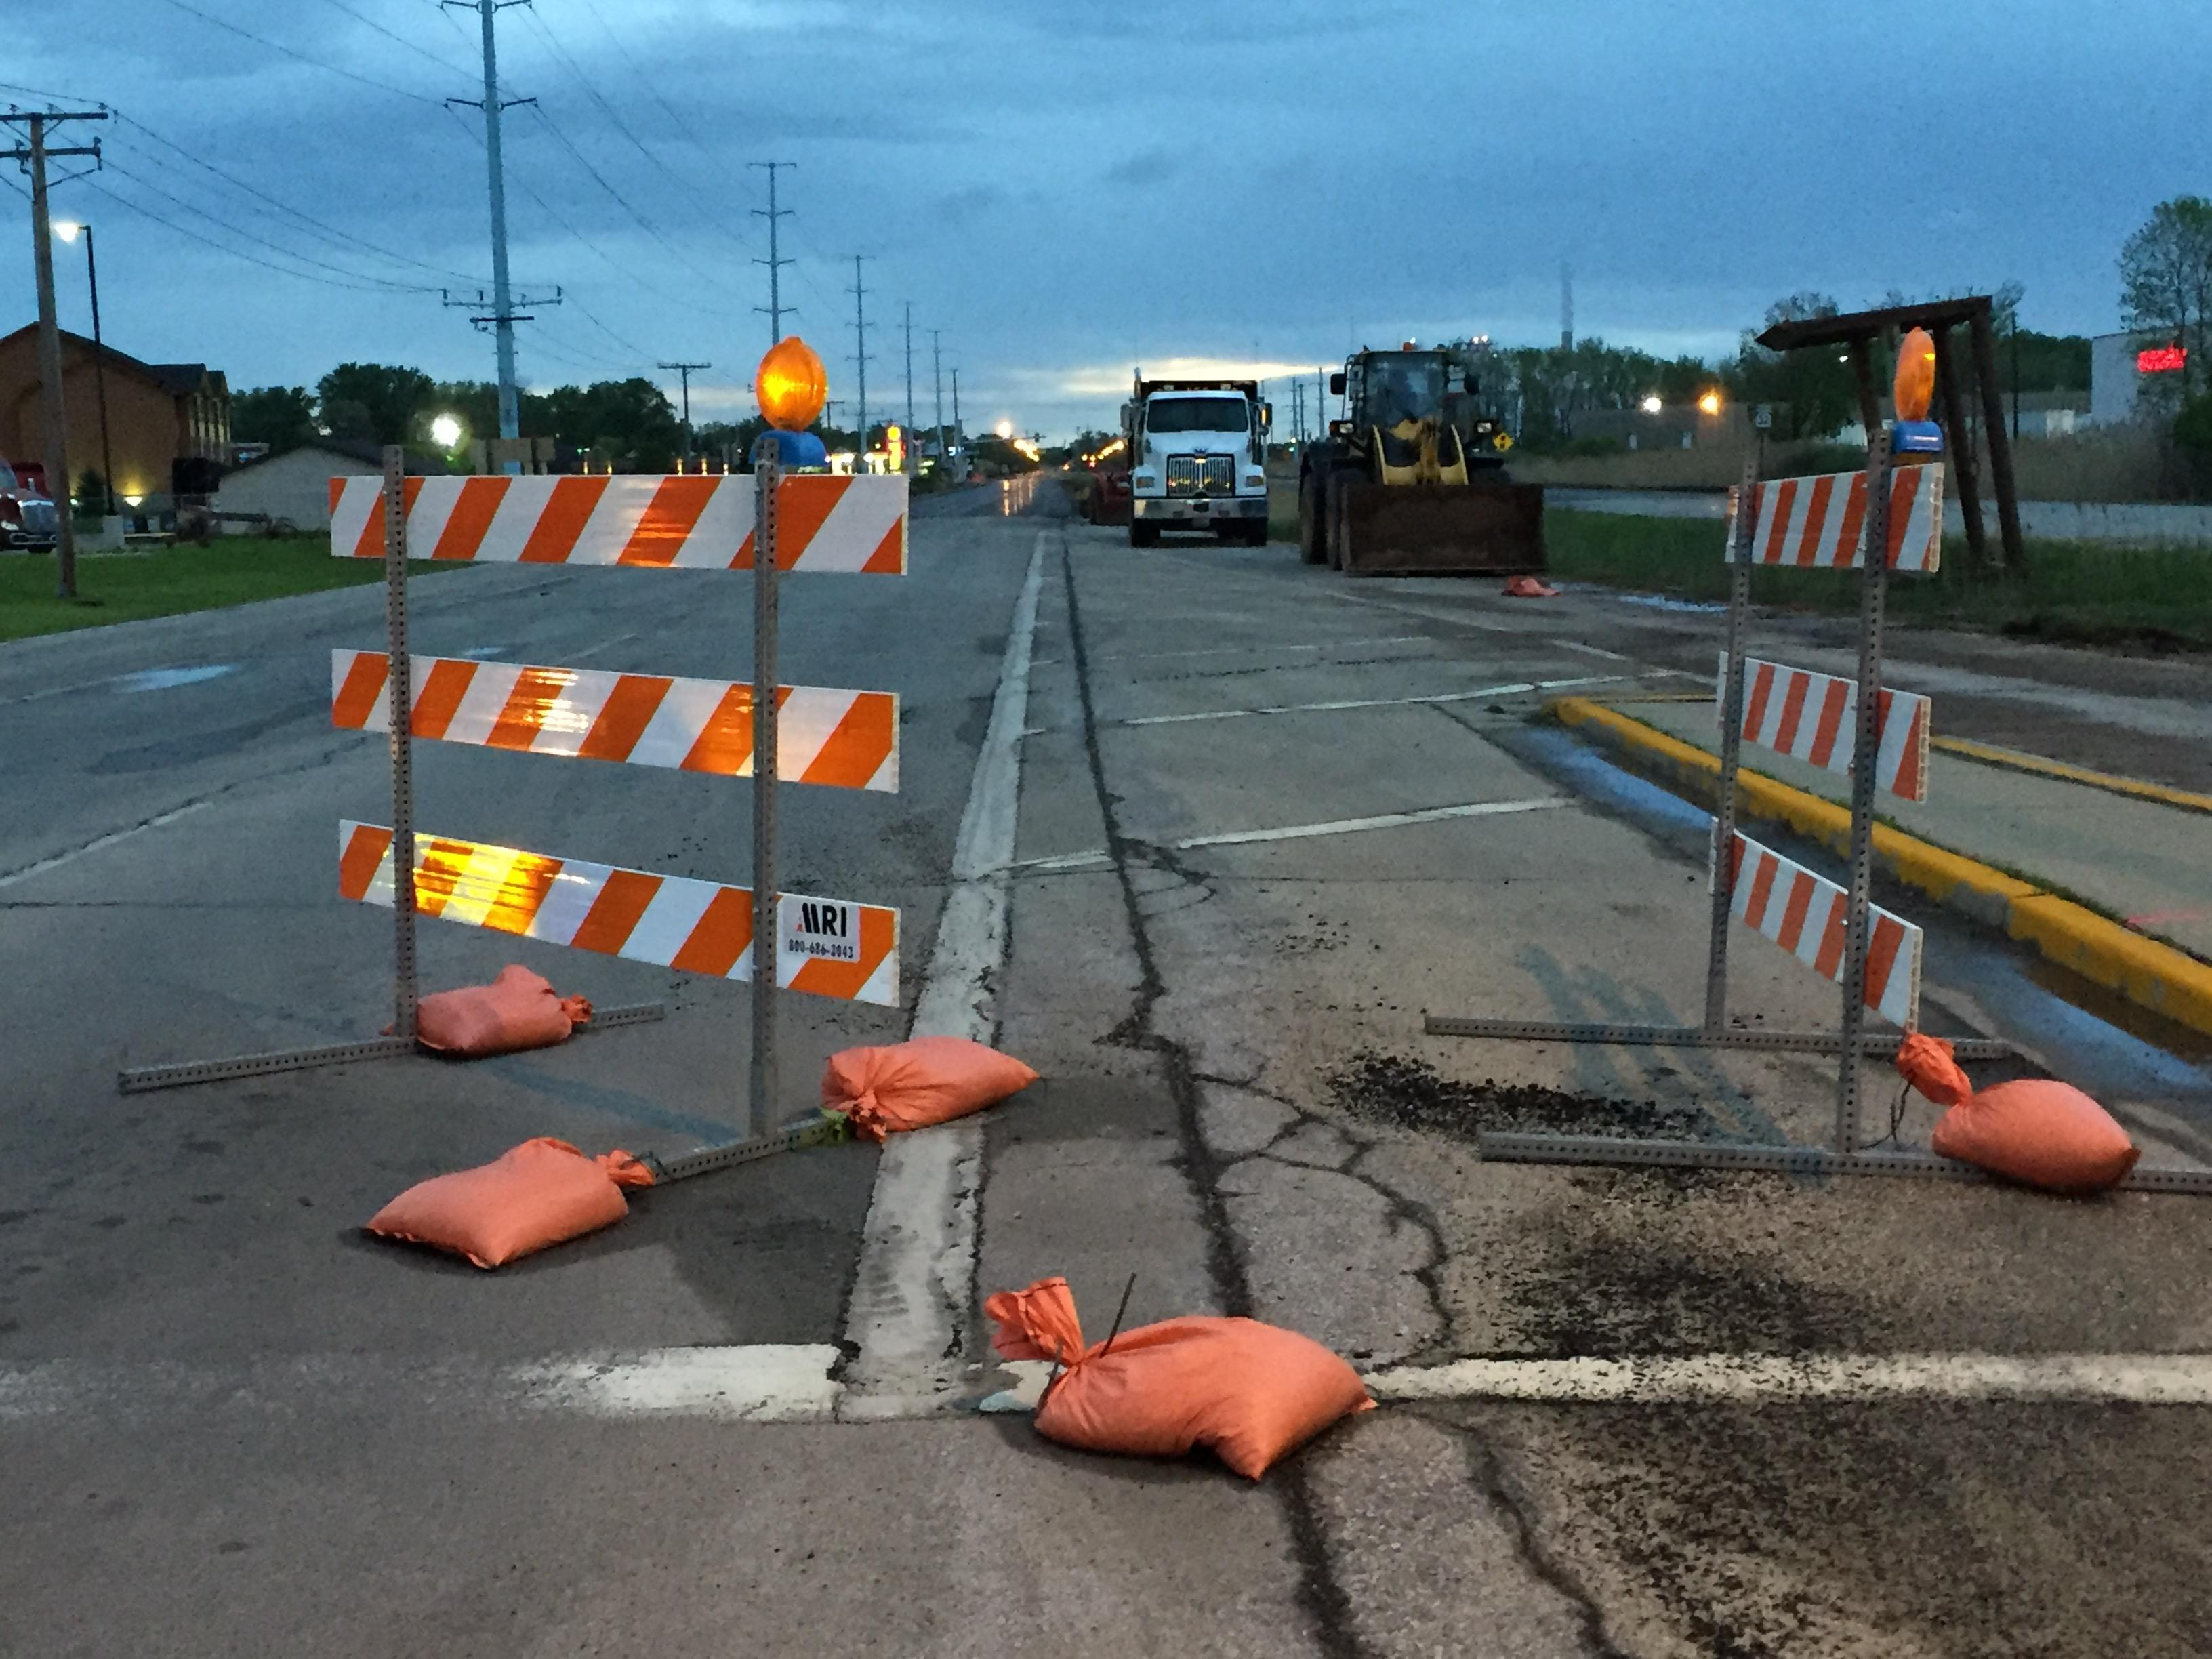 Meteorologist Katy Kramer was in the FOX 11 Storm Chaser Thursday morning, checking out the storm damage in our area. Mike McCarthy Way & Ashland Ave Construction barricades are seen blown over, tossed and damaged. (WLUK/Katy Kramer). May 18, 2017.